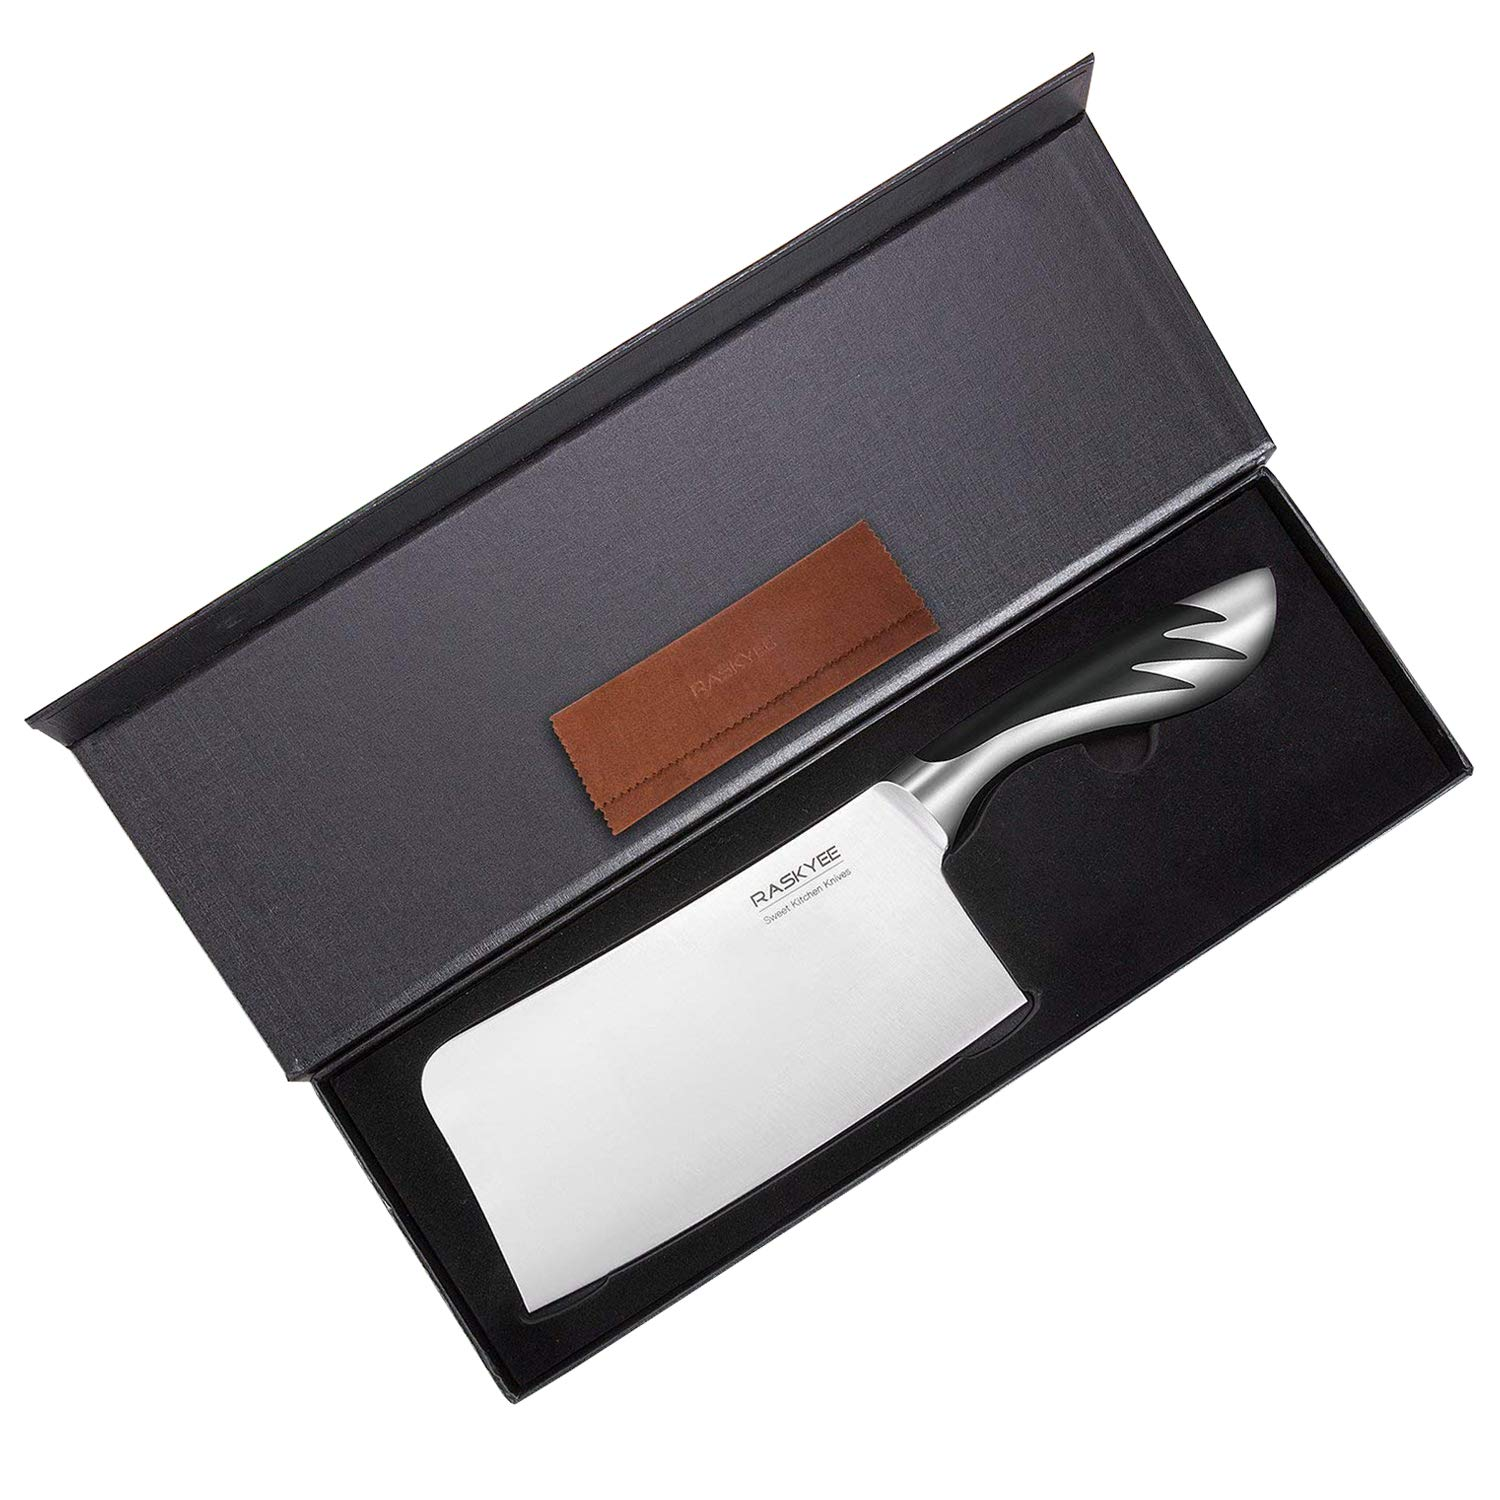 Meat Cleaver,Raskyee 7 inch German Stainless Steel Cleaver Kitchen Meat Knife with Multipurpose Use for Home Kitchen and Restaurant